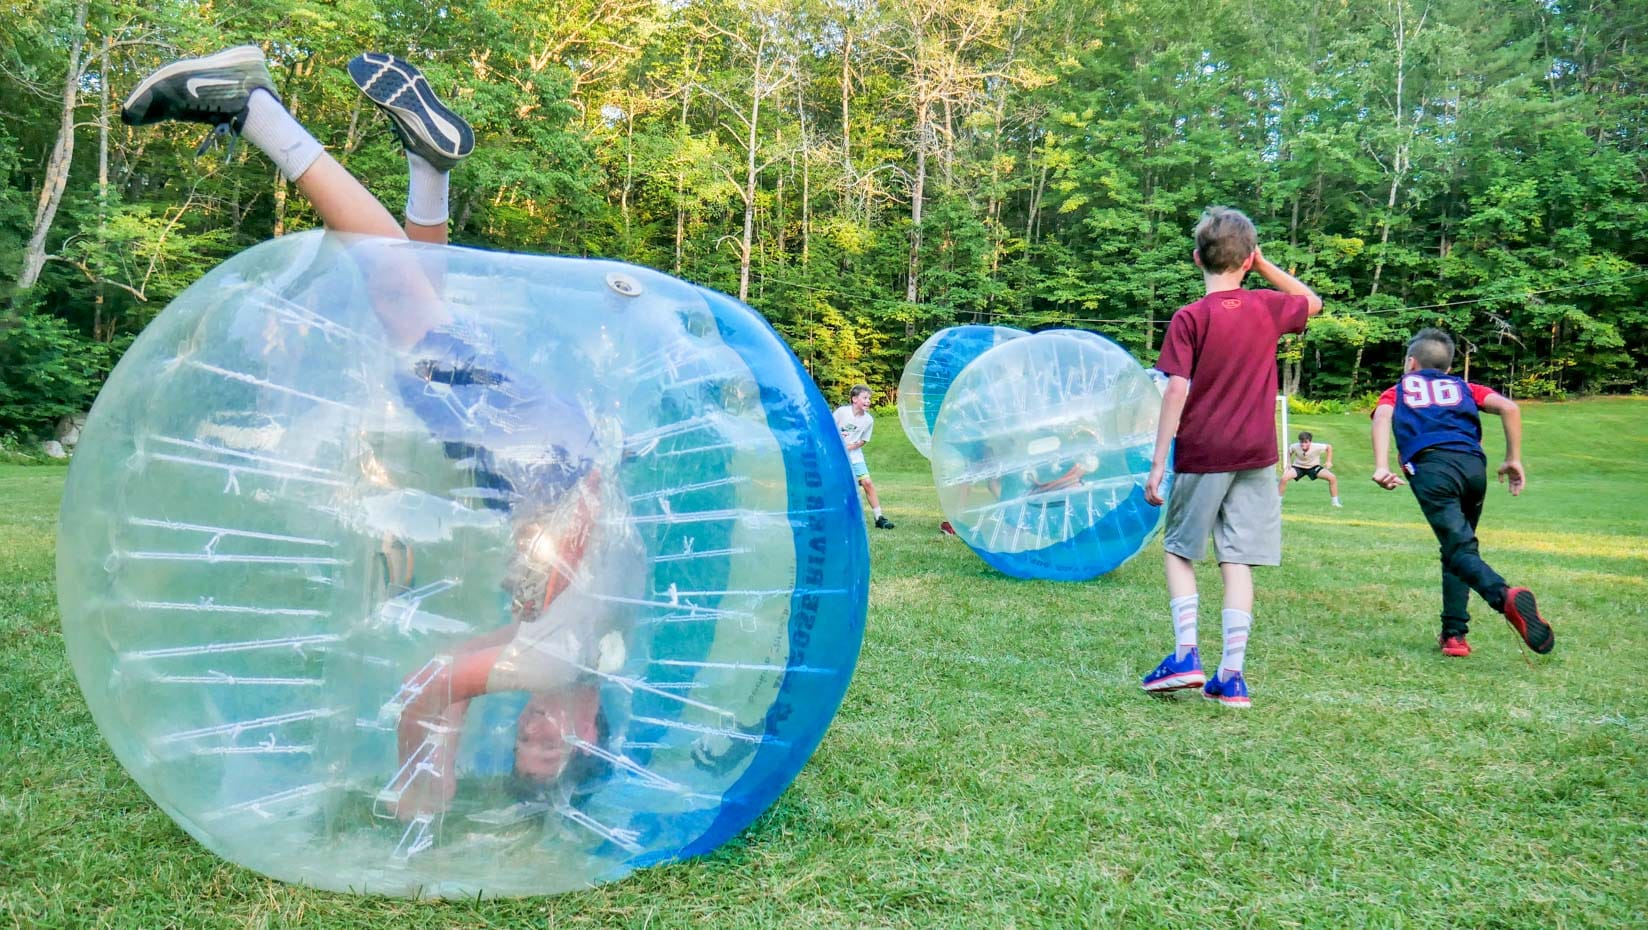 Staff upside down in a bubble ball